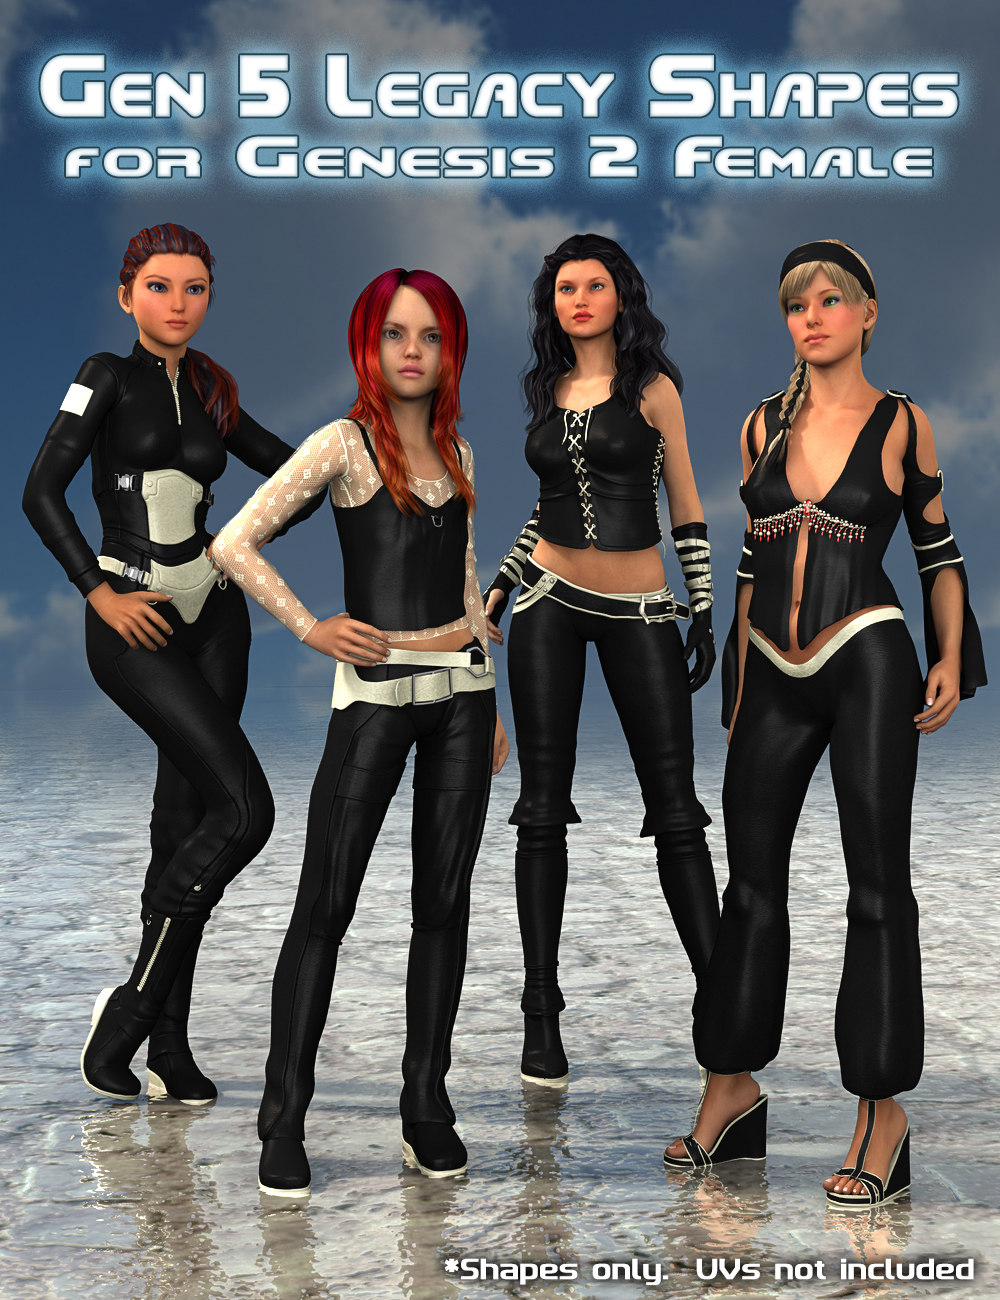 Generation 5 Legacy Shapes for Genesis 2 Female(s) by: SloshWerks, 3D Models by Daz 3D